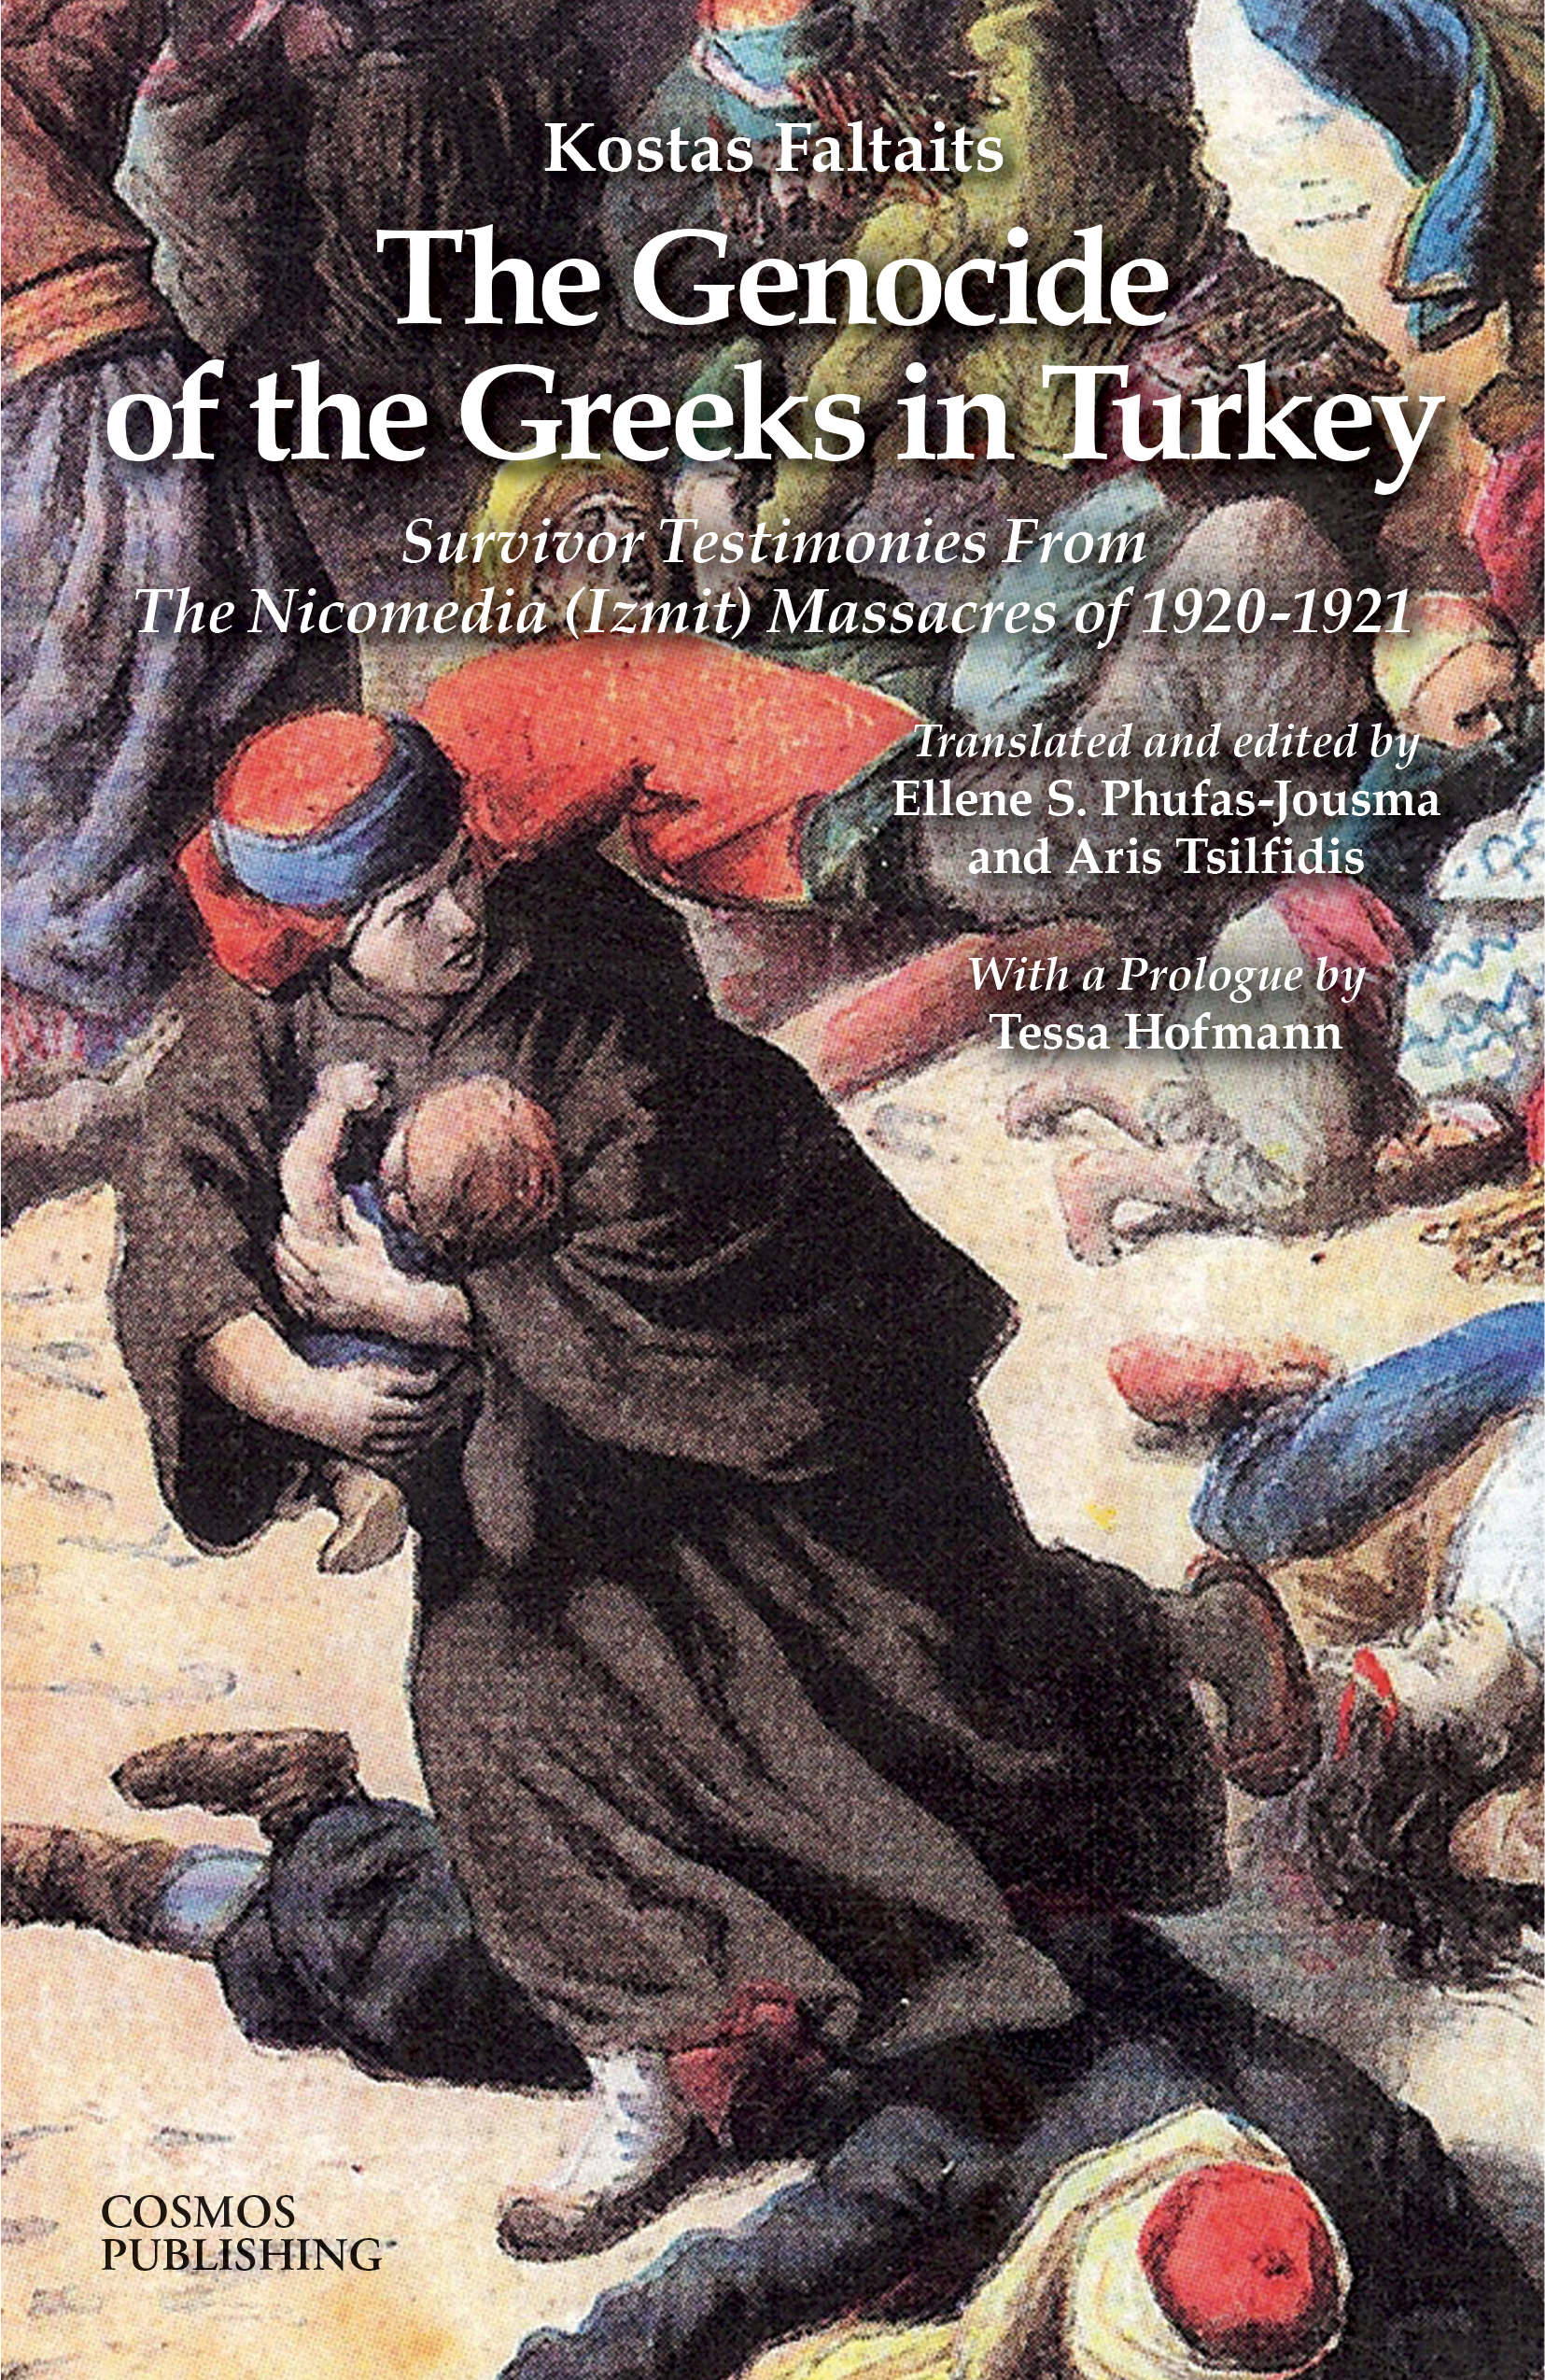 The Genocide of the Greeks in Turkey